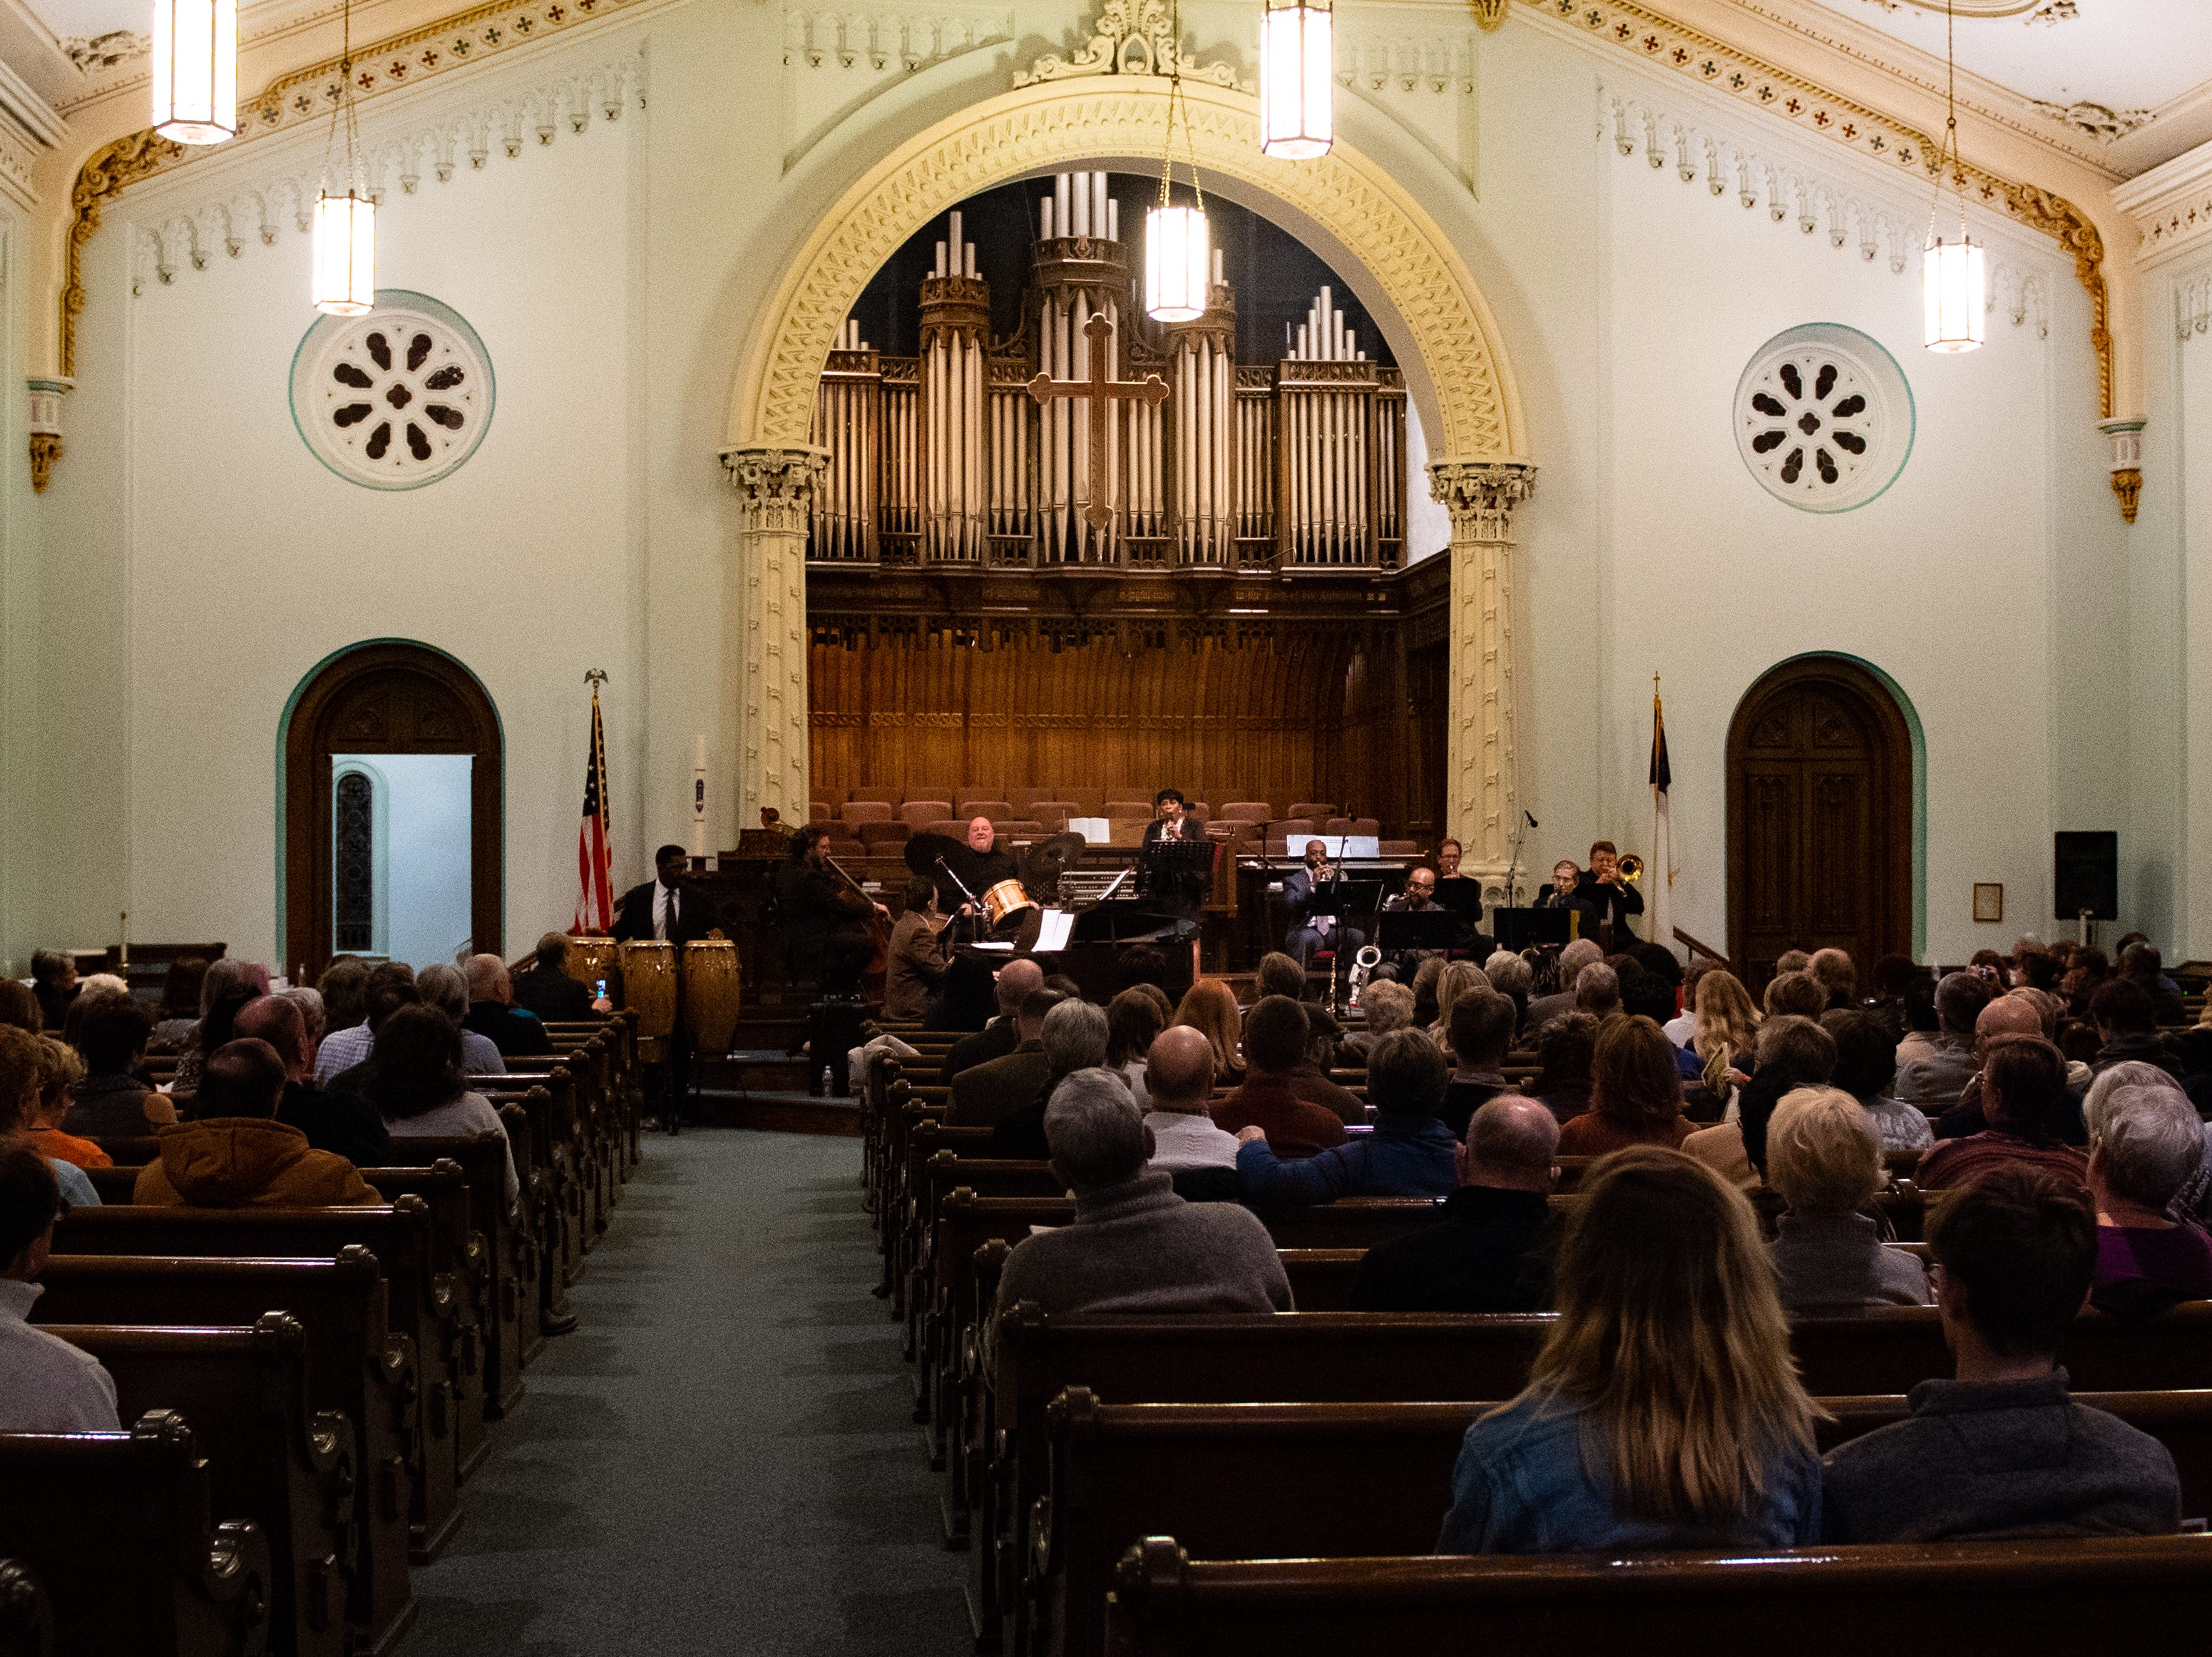 On January 12, 2019, the First Presbyterian Church in York hosted the 21st annual Jazz Vespers concert in honor of Rev. Martin Luther King Jr.